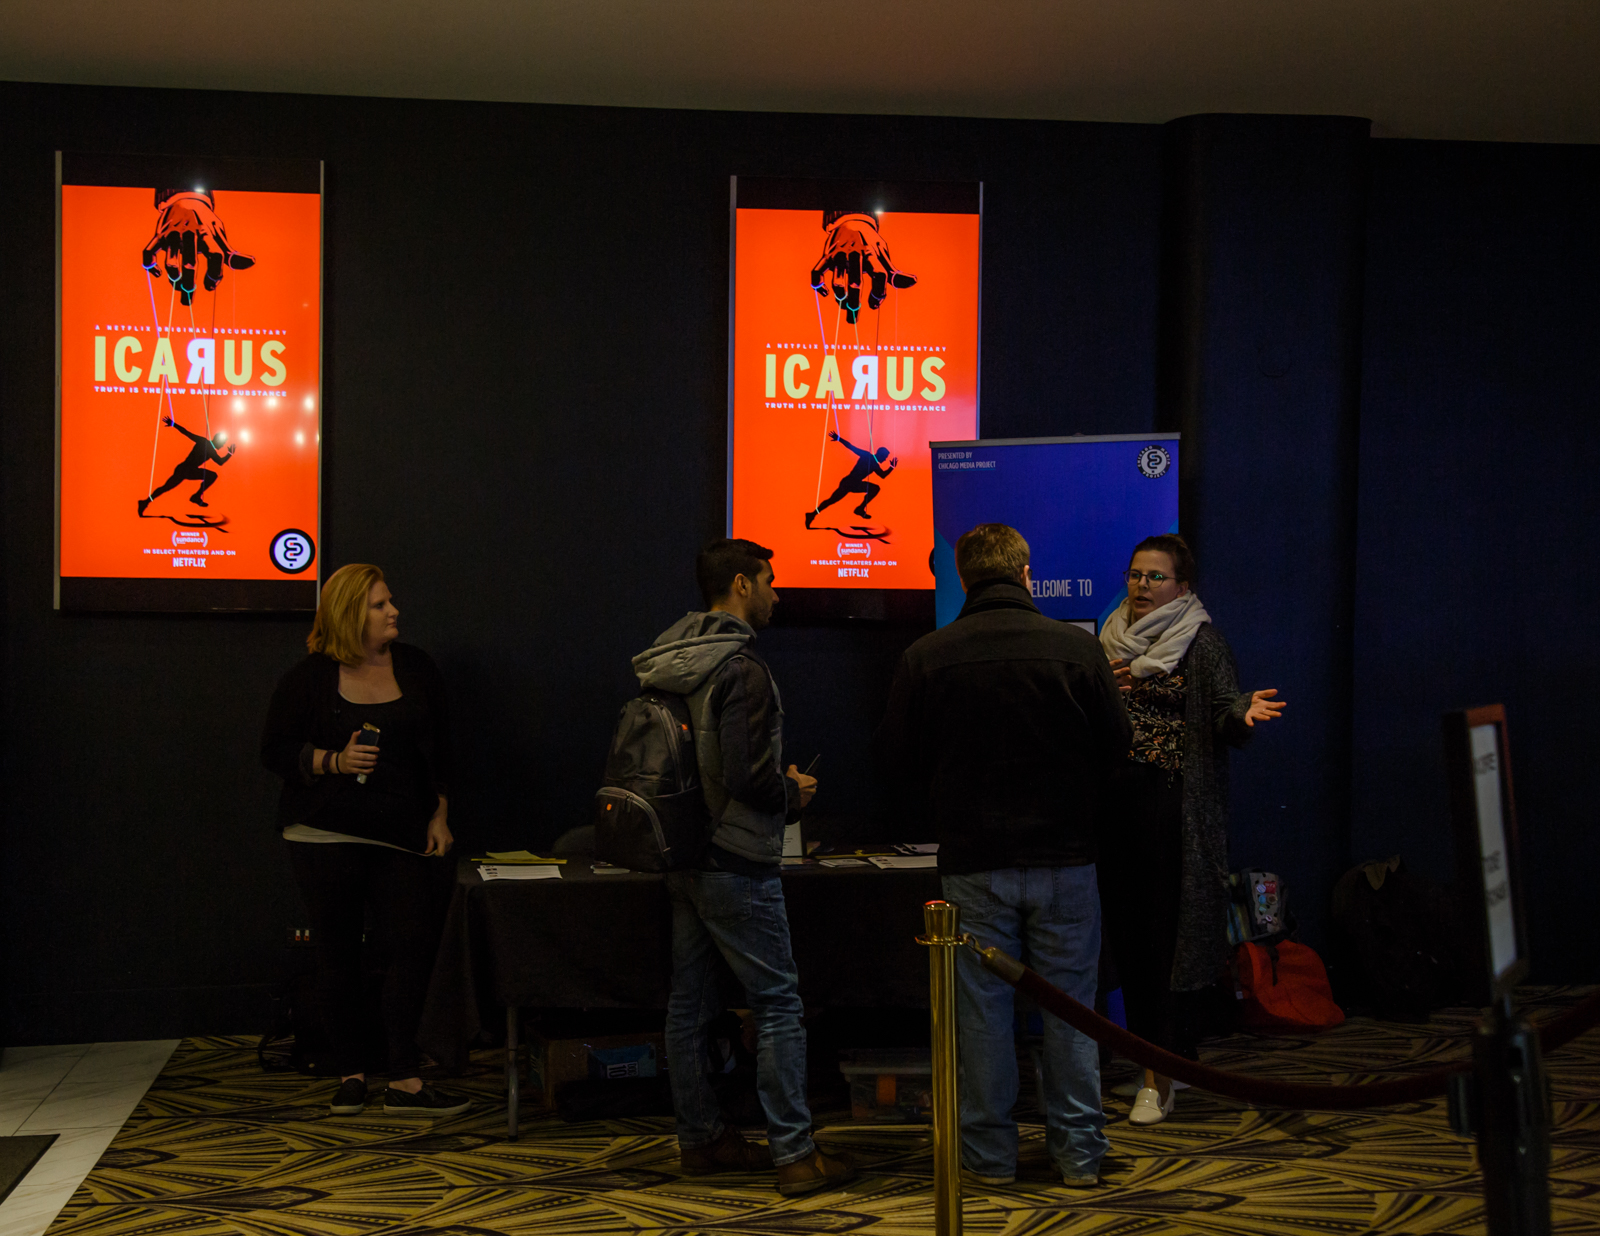 180222-dinner-and-docs-icarus-013.jpg